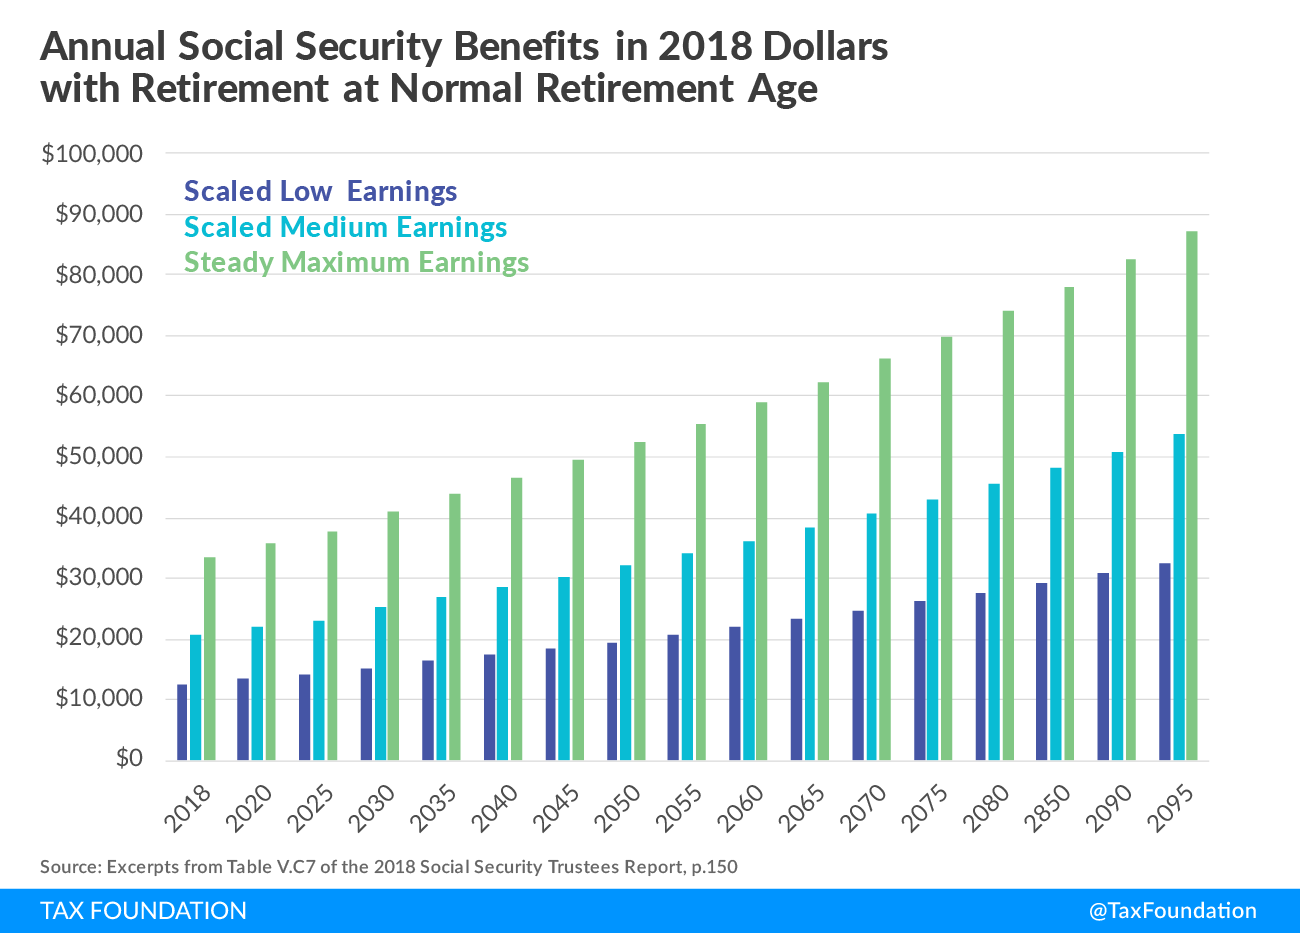 Annual Social Security Benefits